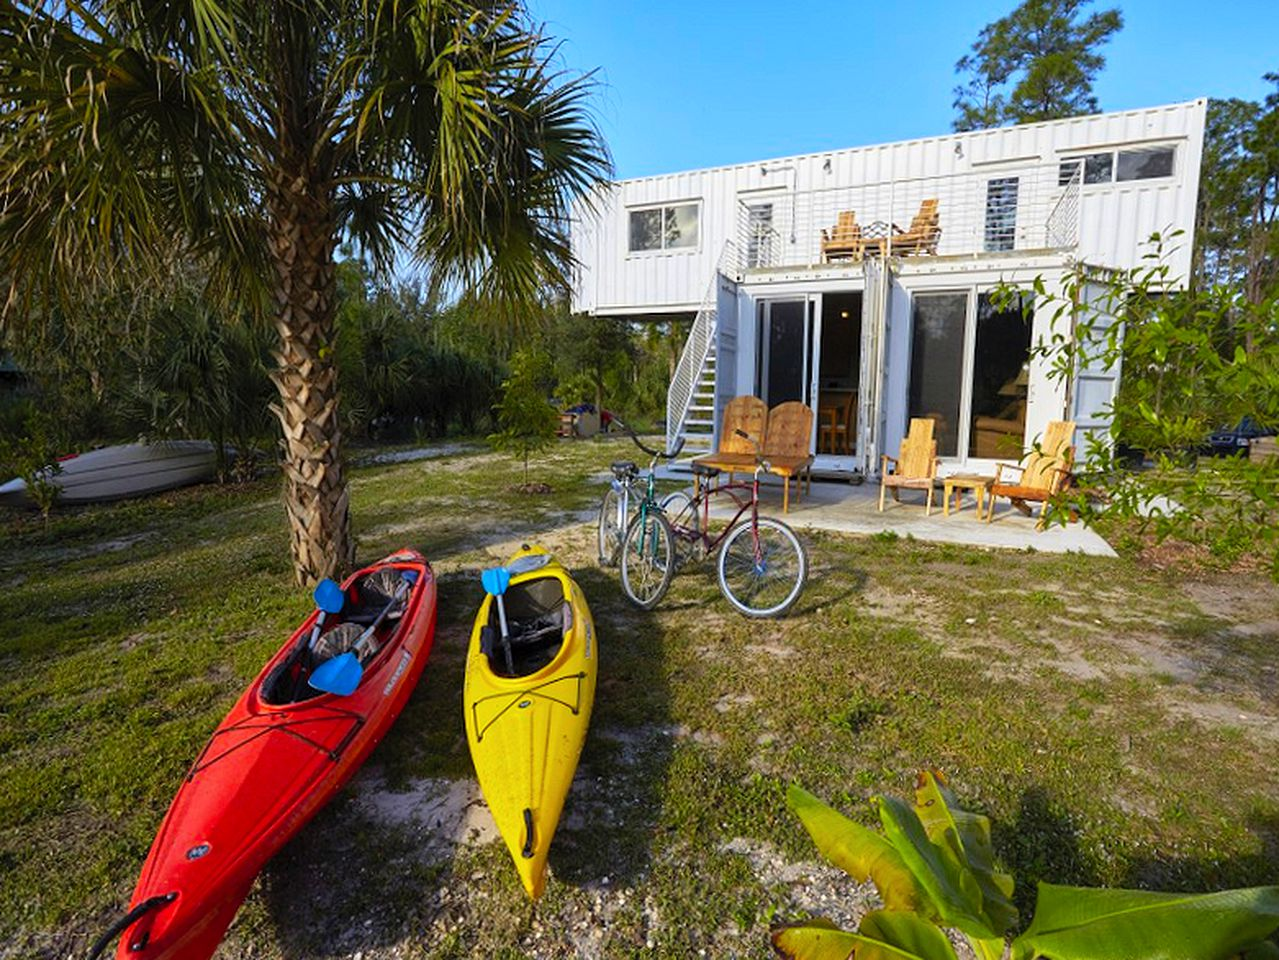 Upcycled shipping containers transformed into a glamping Florida home rental